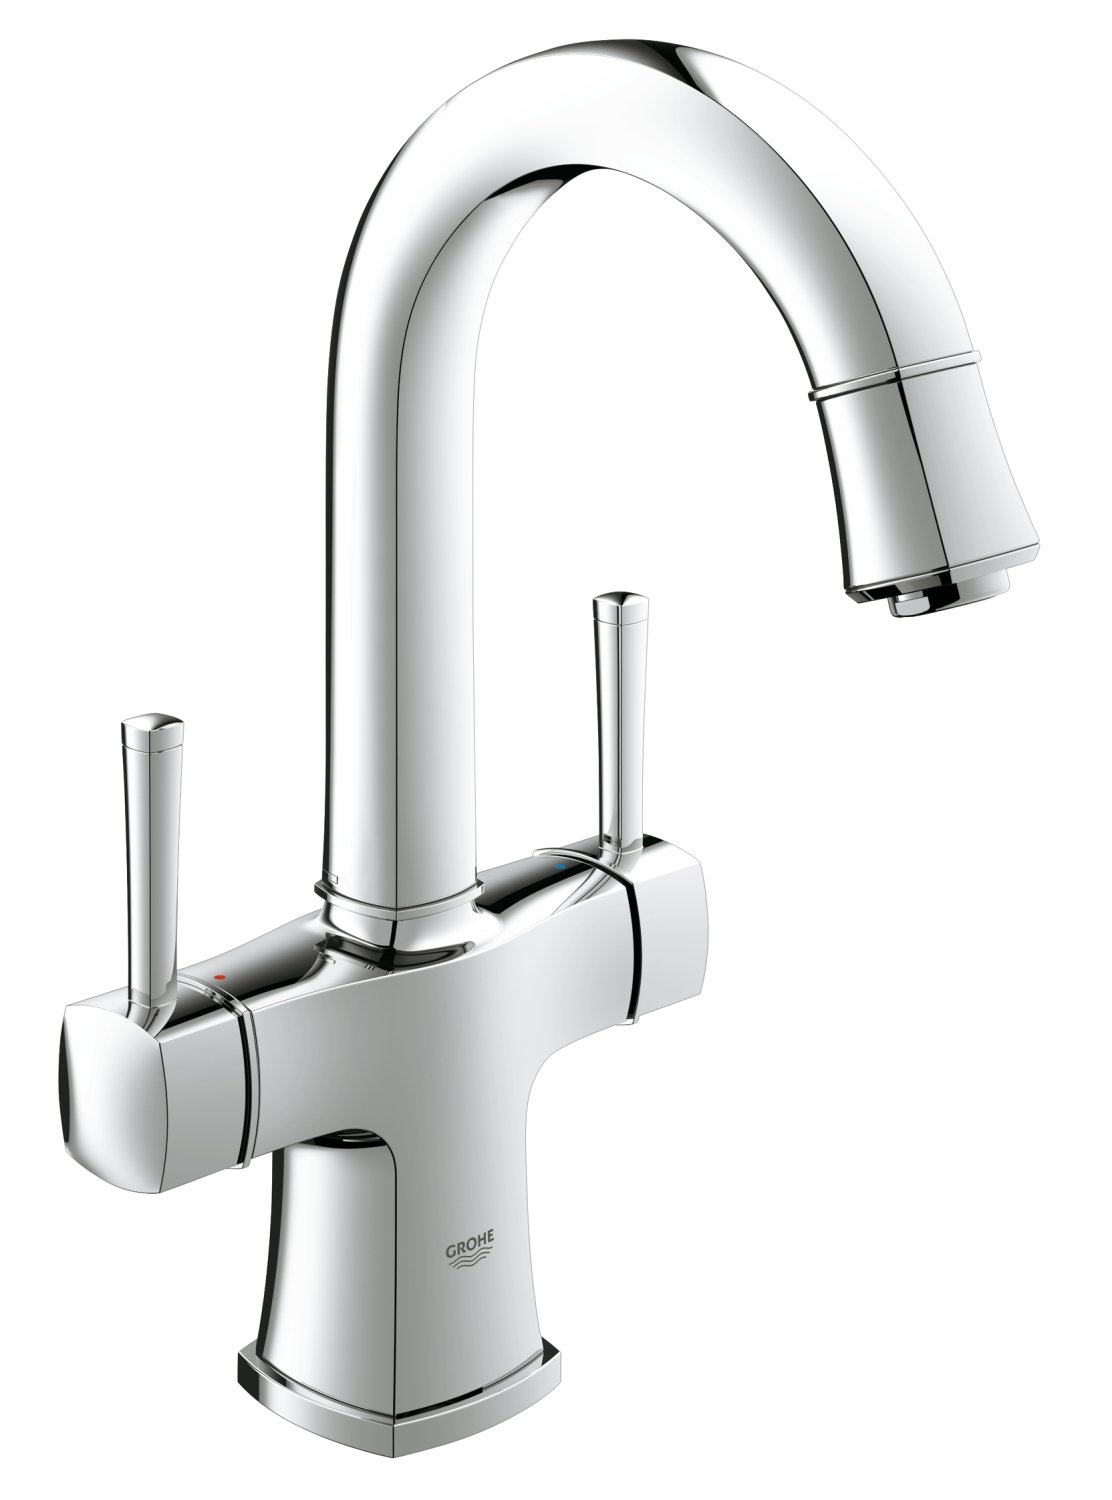 grohe bath mixer taps mobroi com grohe 21107000 grandera 2hdl basin swivel spout amazon